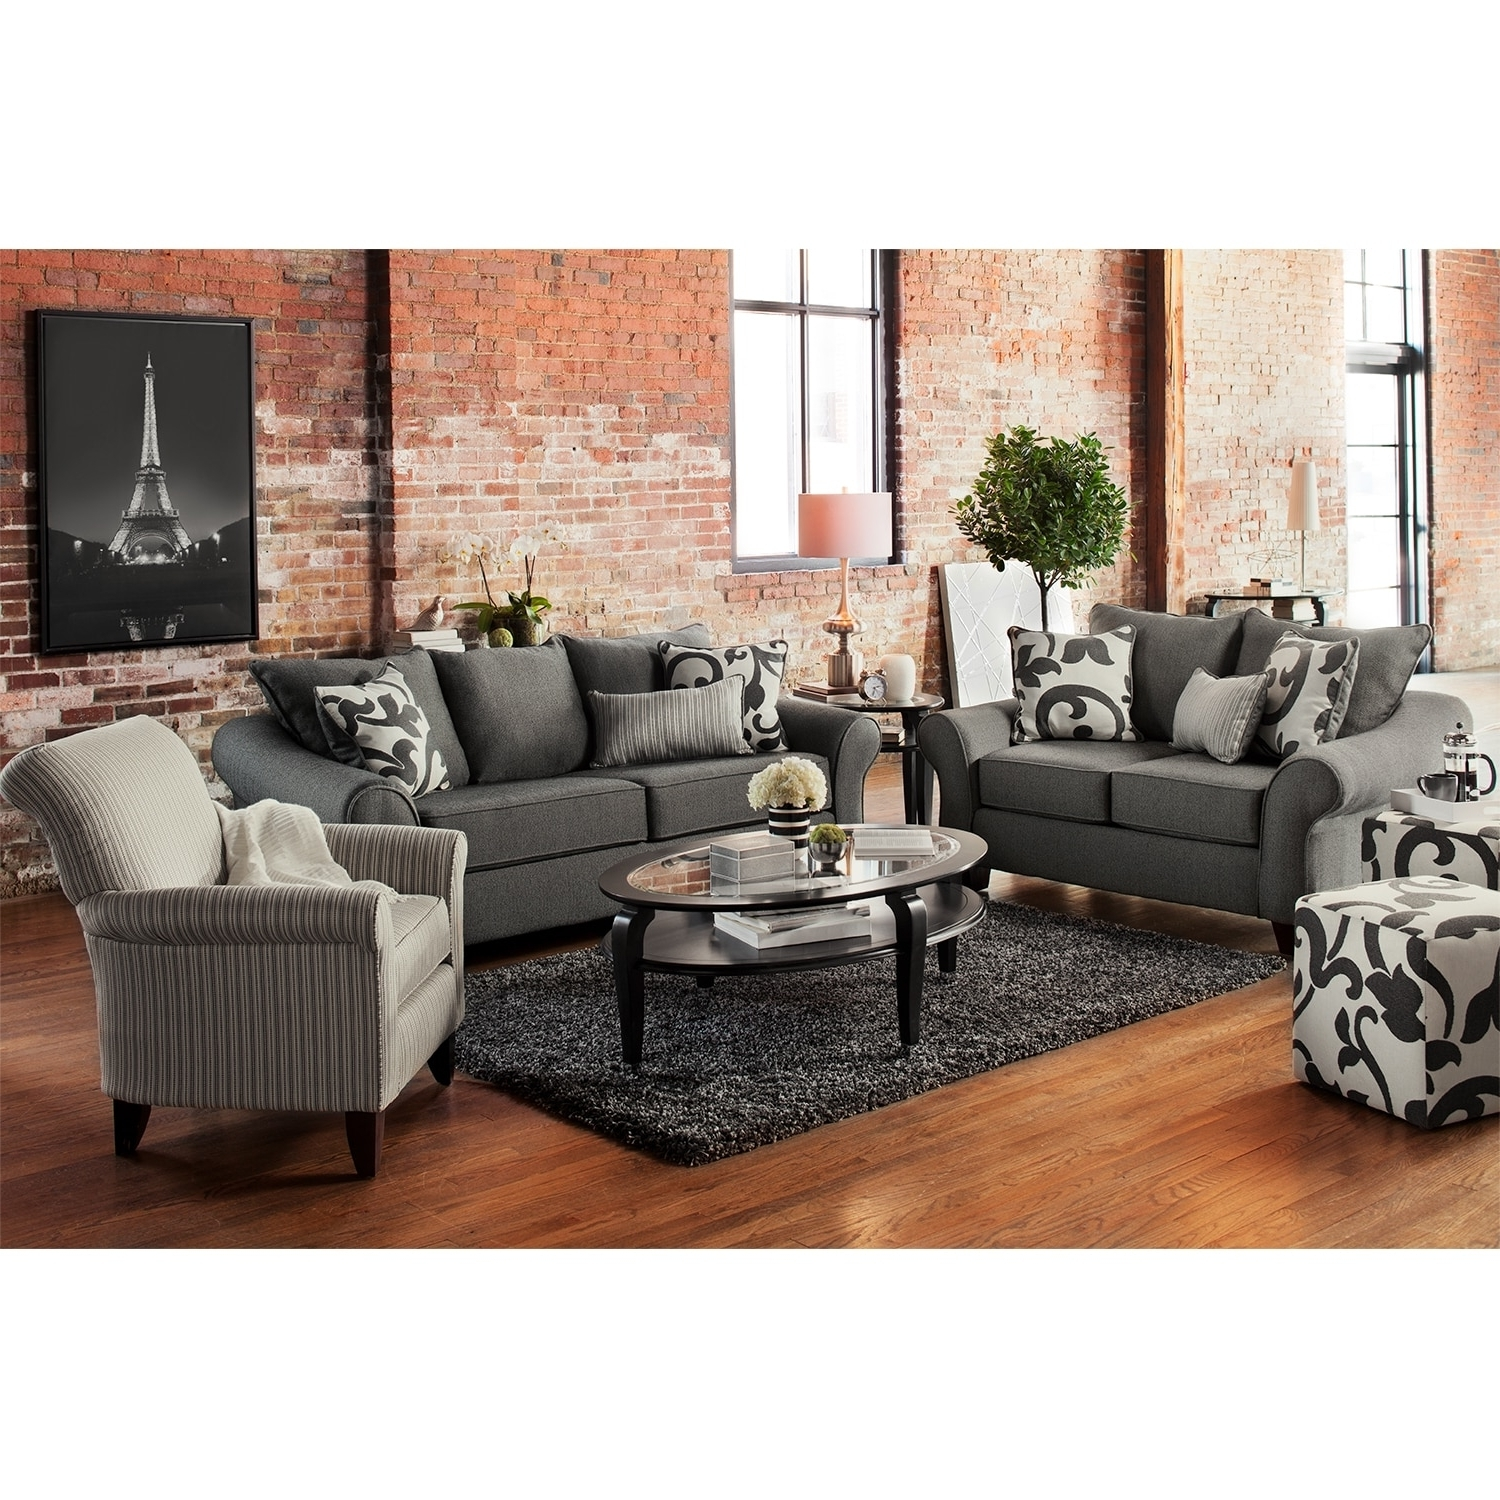 Popular Sofa And Accent Chair Sets With Leather Sofa Loveseat Chair And Ottoman Modern Set Accent (View 14 of 20)